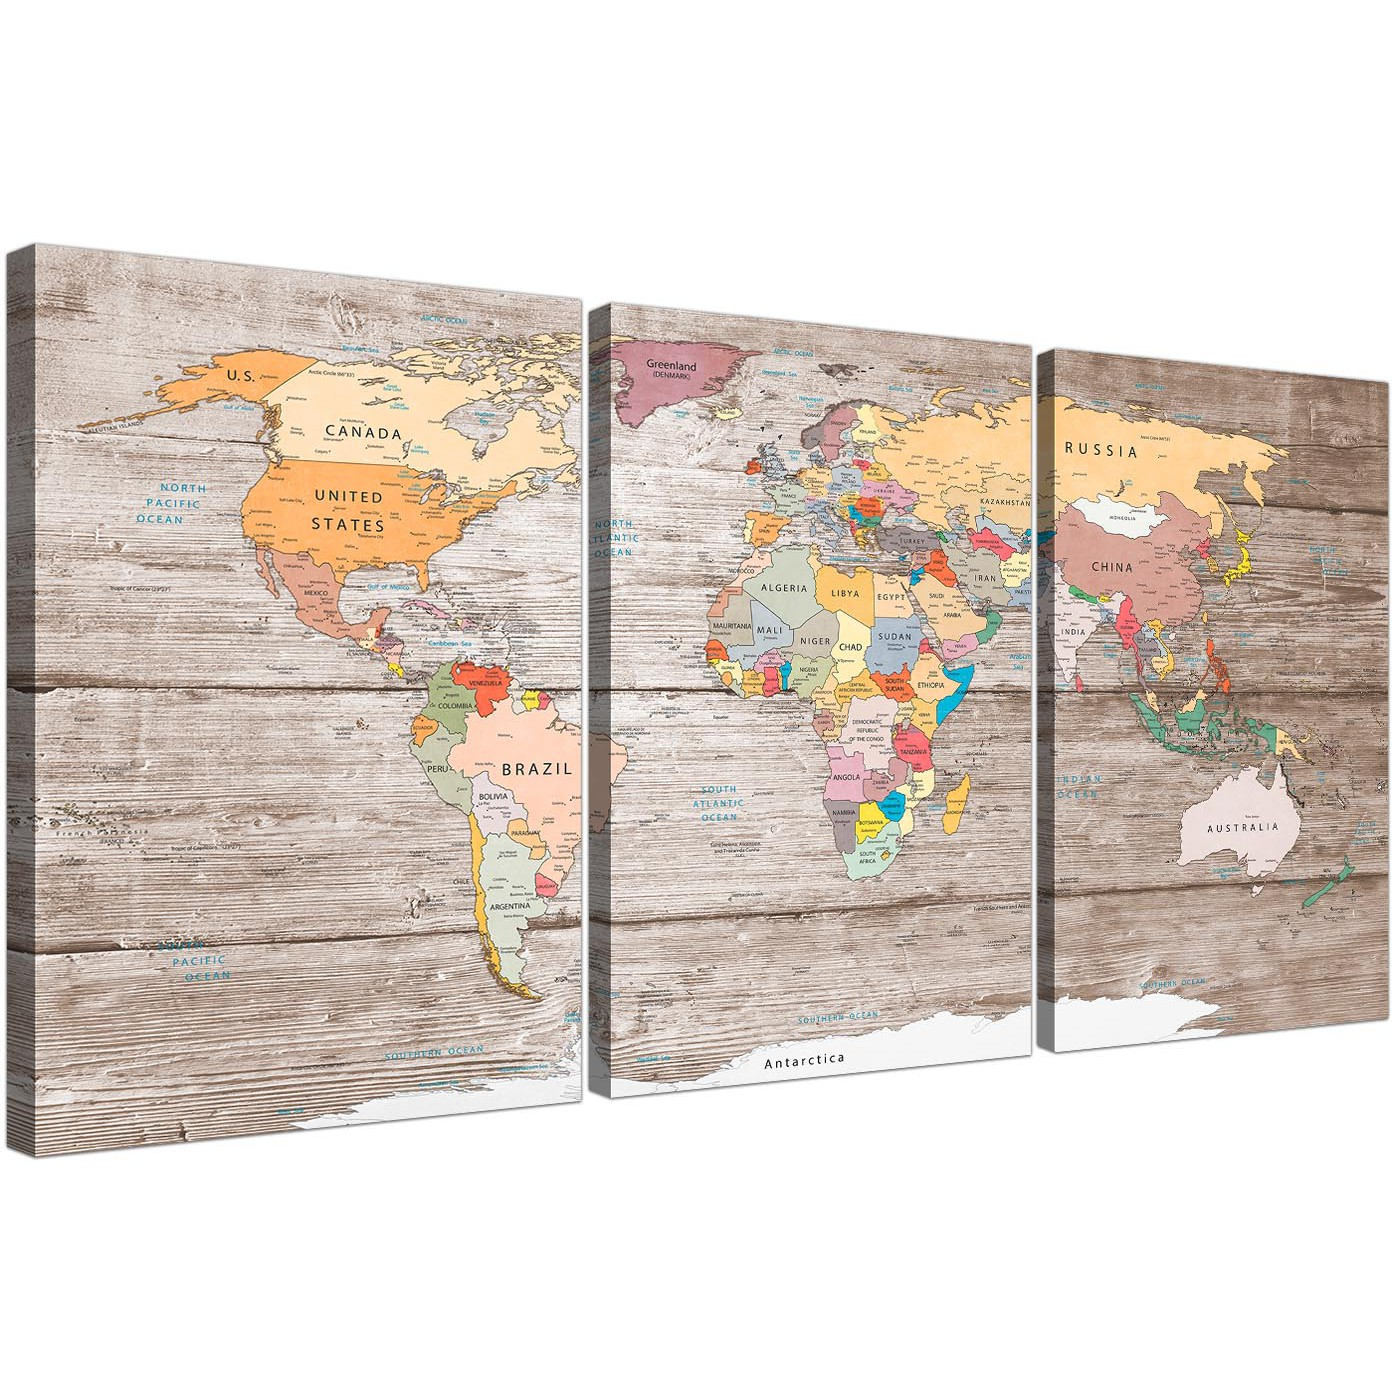 Large decorative map of world atlas canvas wall art print multi 3 oversized large decorative map of the world atlas canvas multi triptych 3326 for your kitchen display gallery item 1 gumiabroncs Gallery